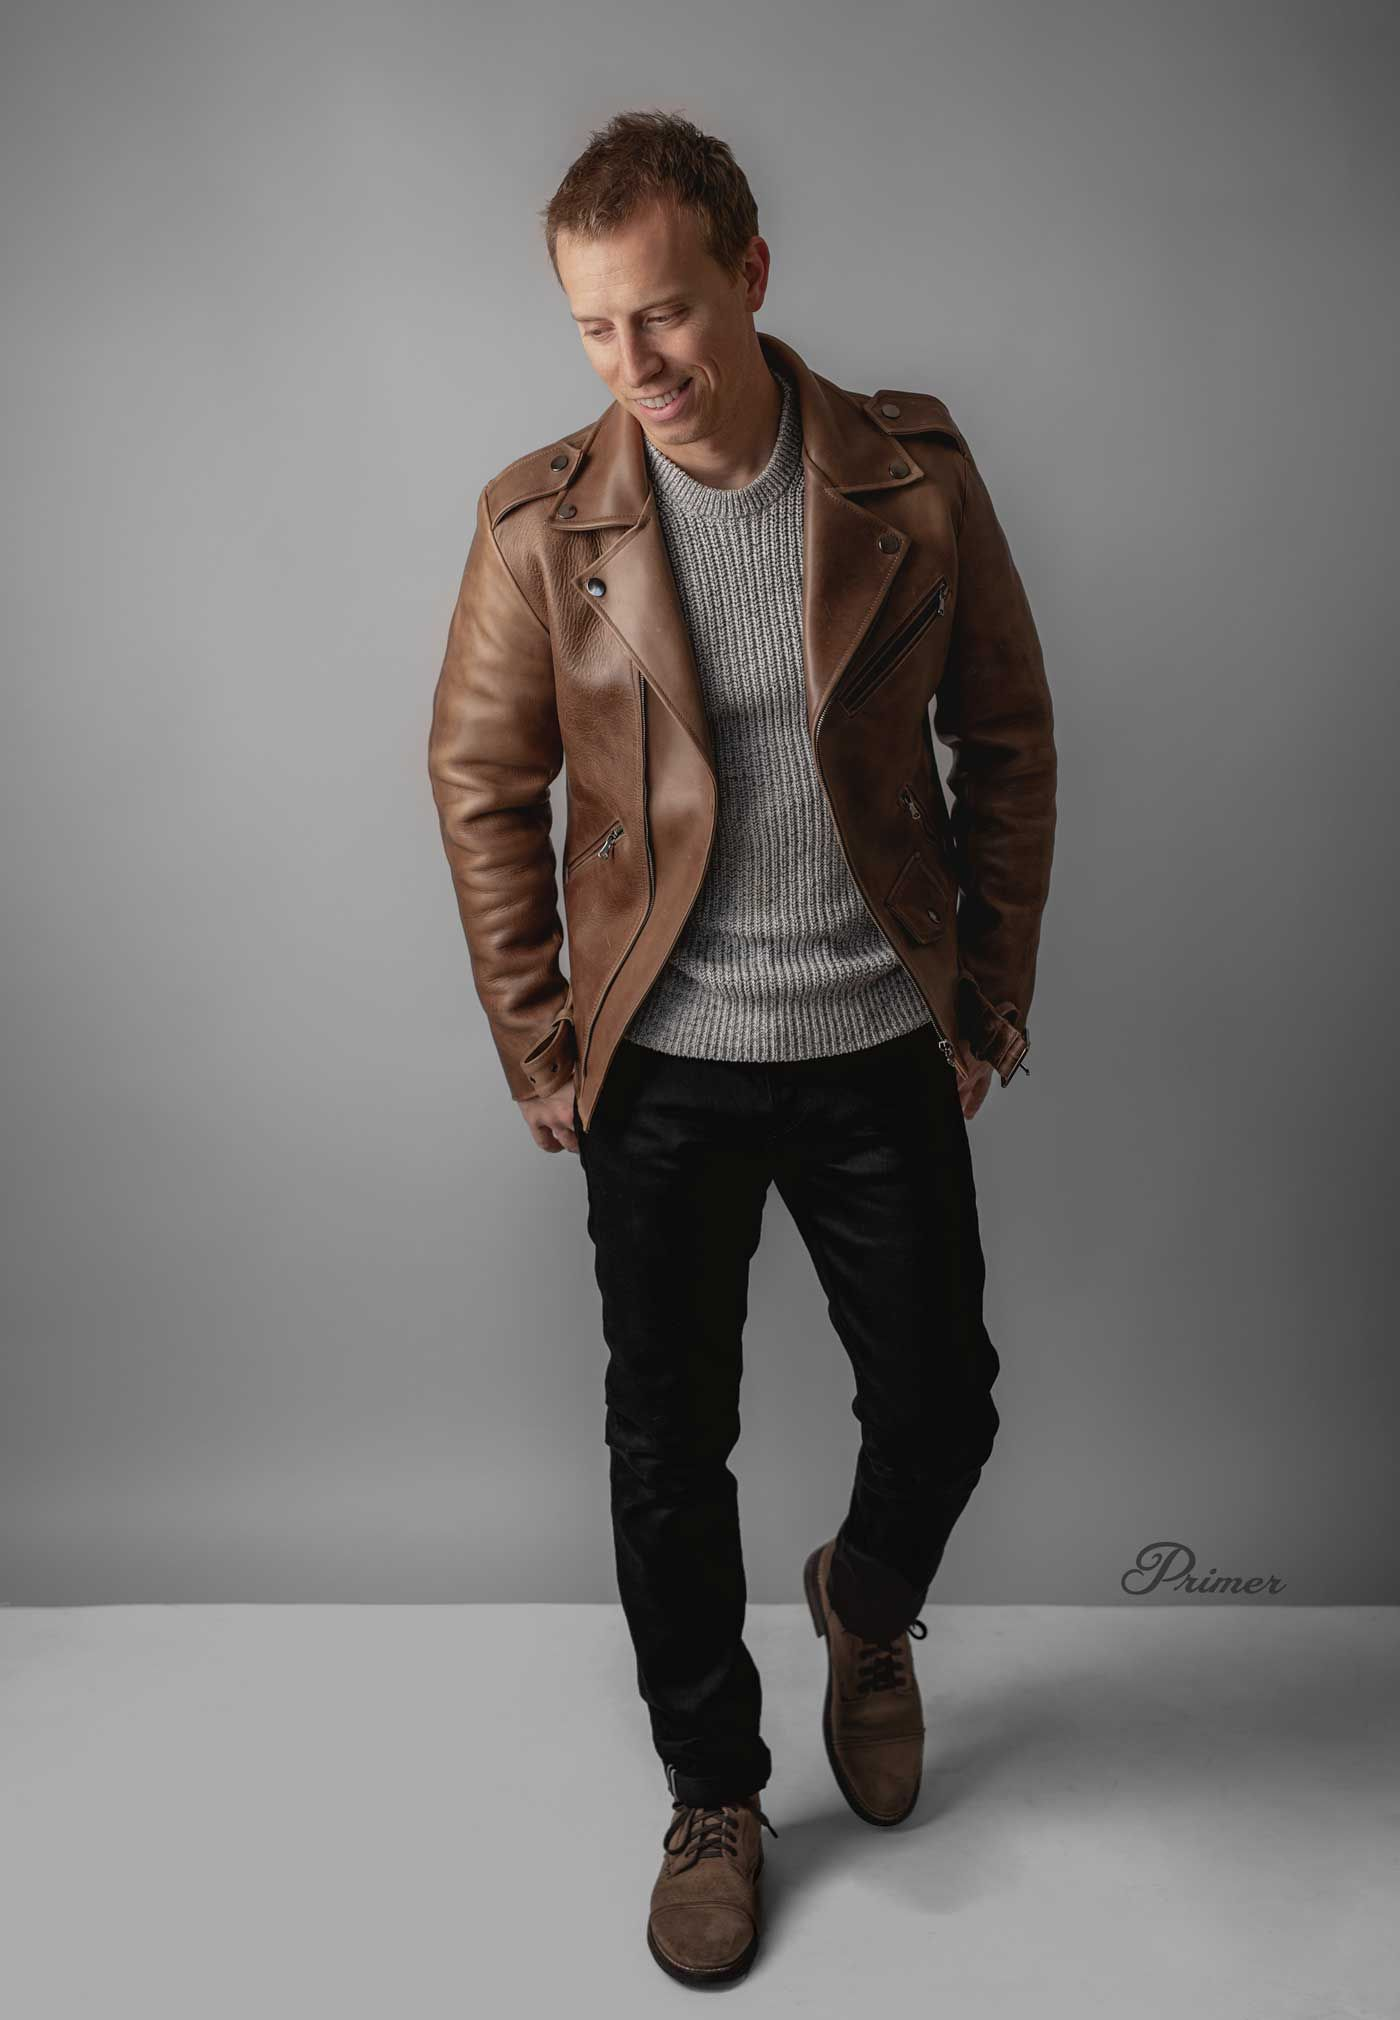 These 7 Shoppable Outfits Prove You Can Pull Off A Brown Leather Jacket Brown Leather Jacket Men Leather Jacket Outfit Men Brown Leather Jacket Outfit